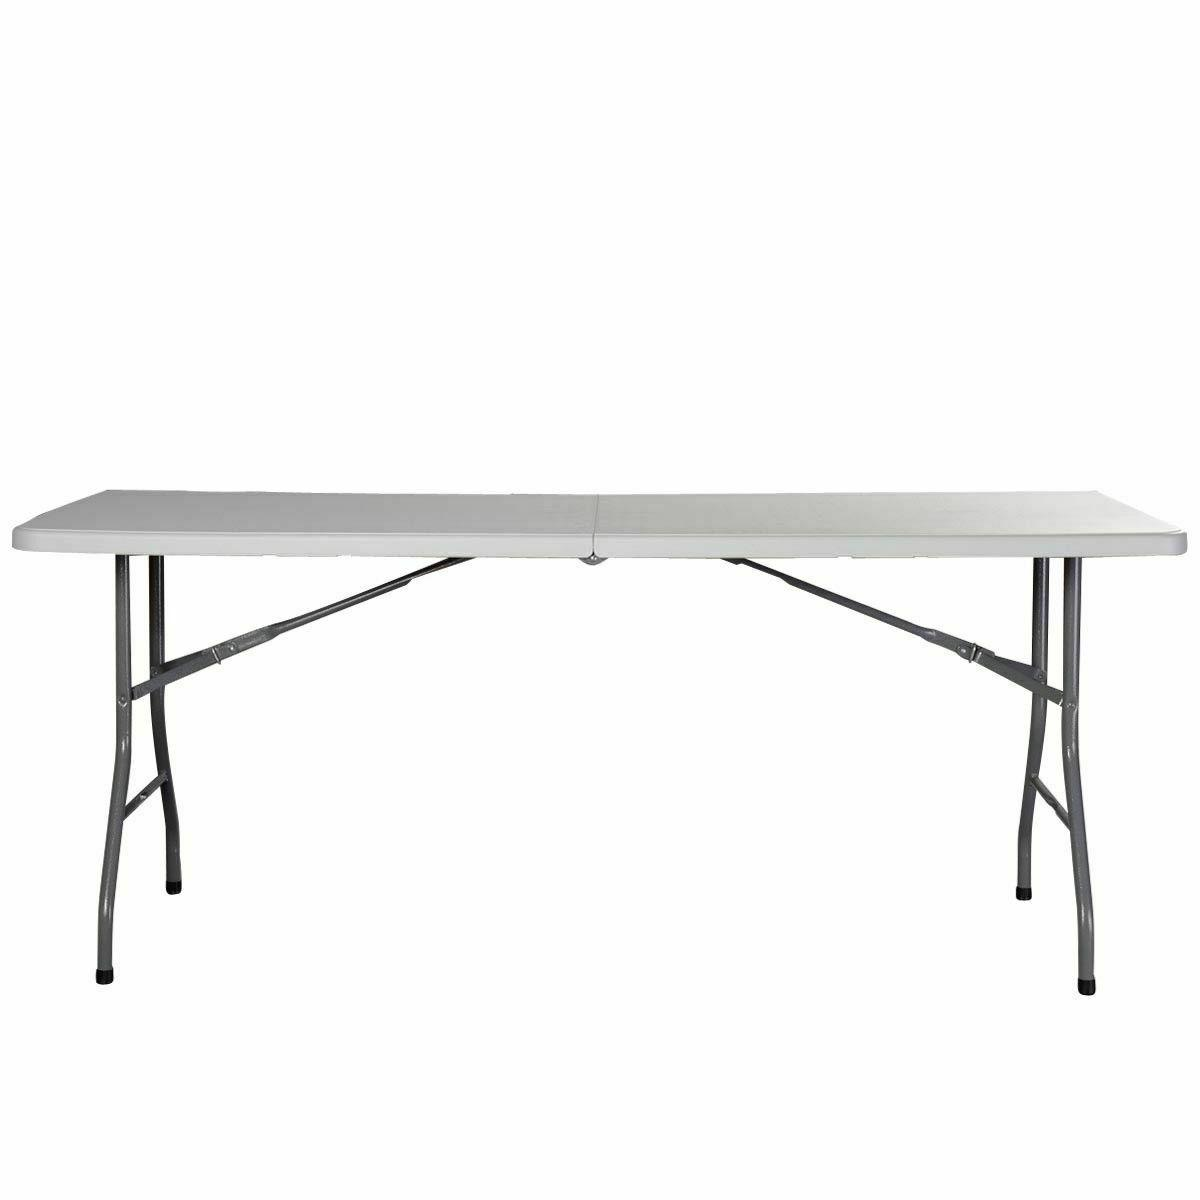 6' Folding Table Plastic Indoor Party